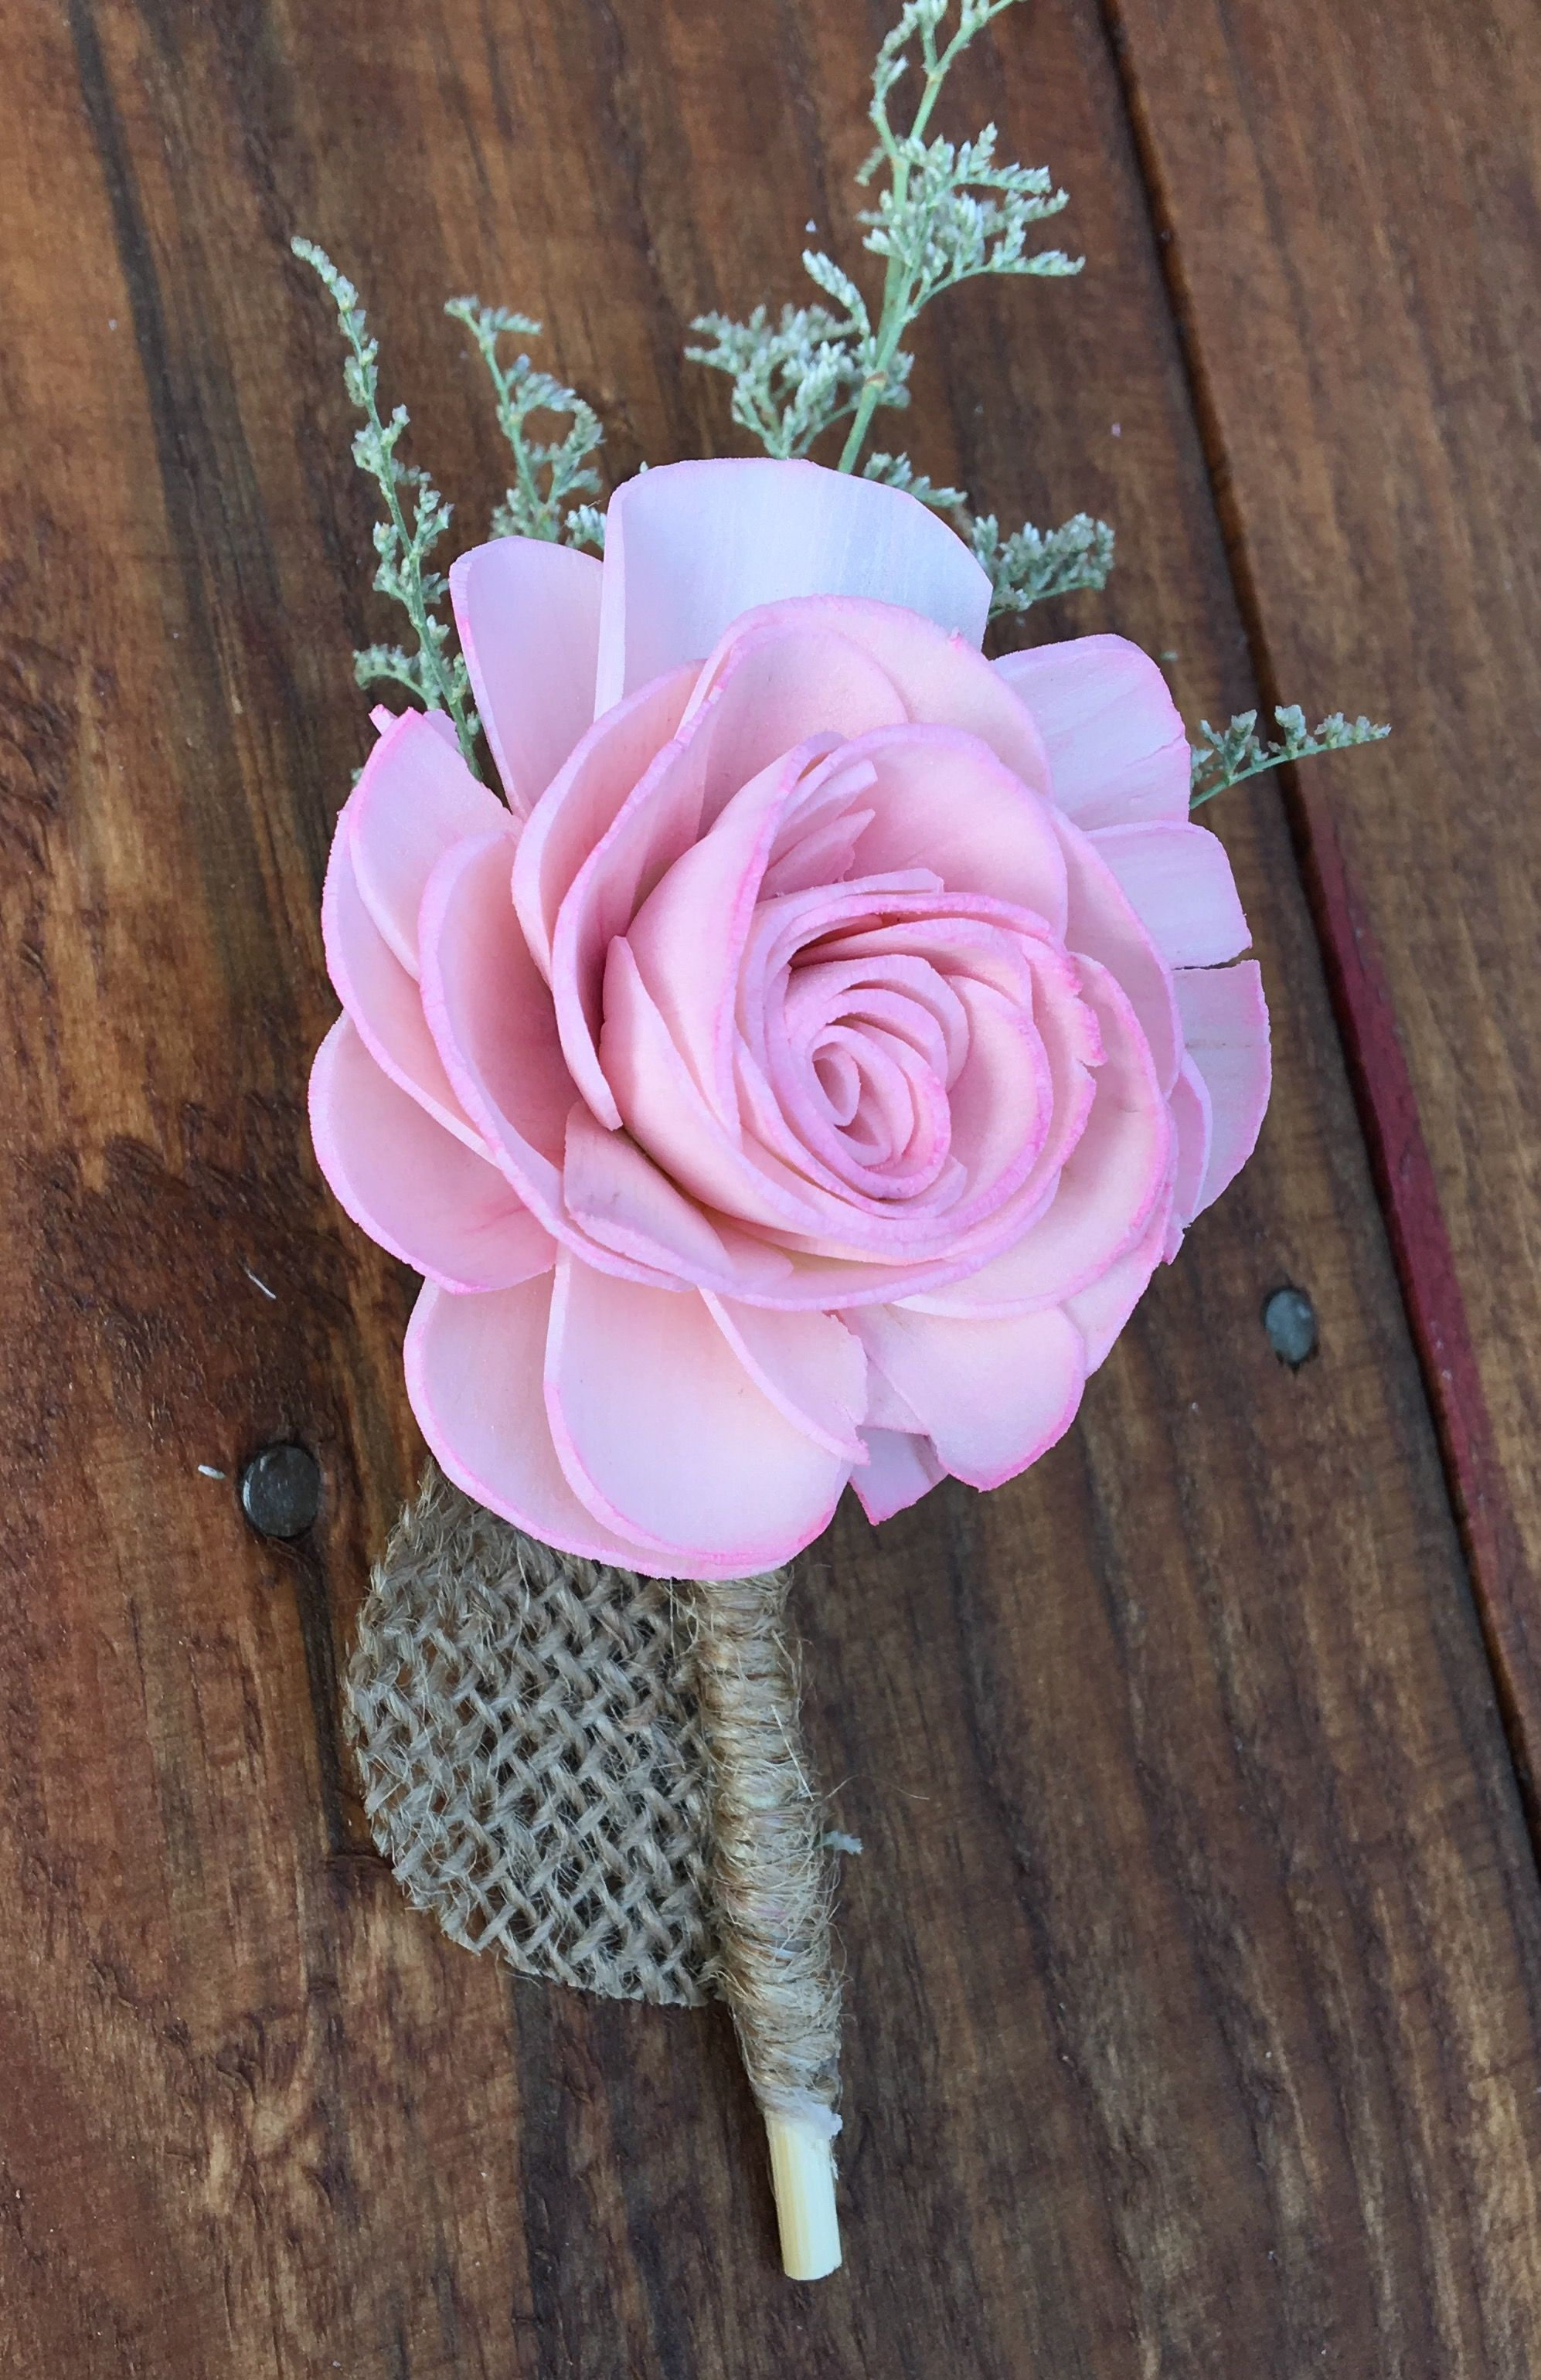 Blush Pink Boutonnières with Wood Flowers. Made by Luv2DIY